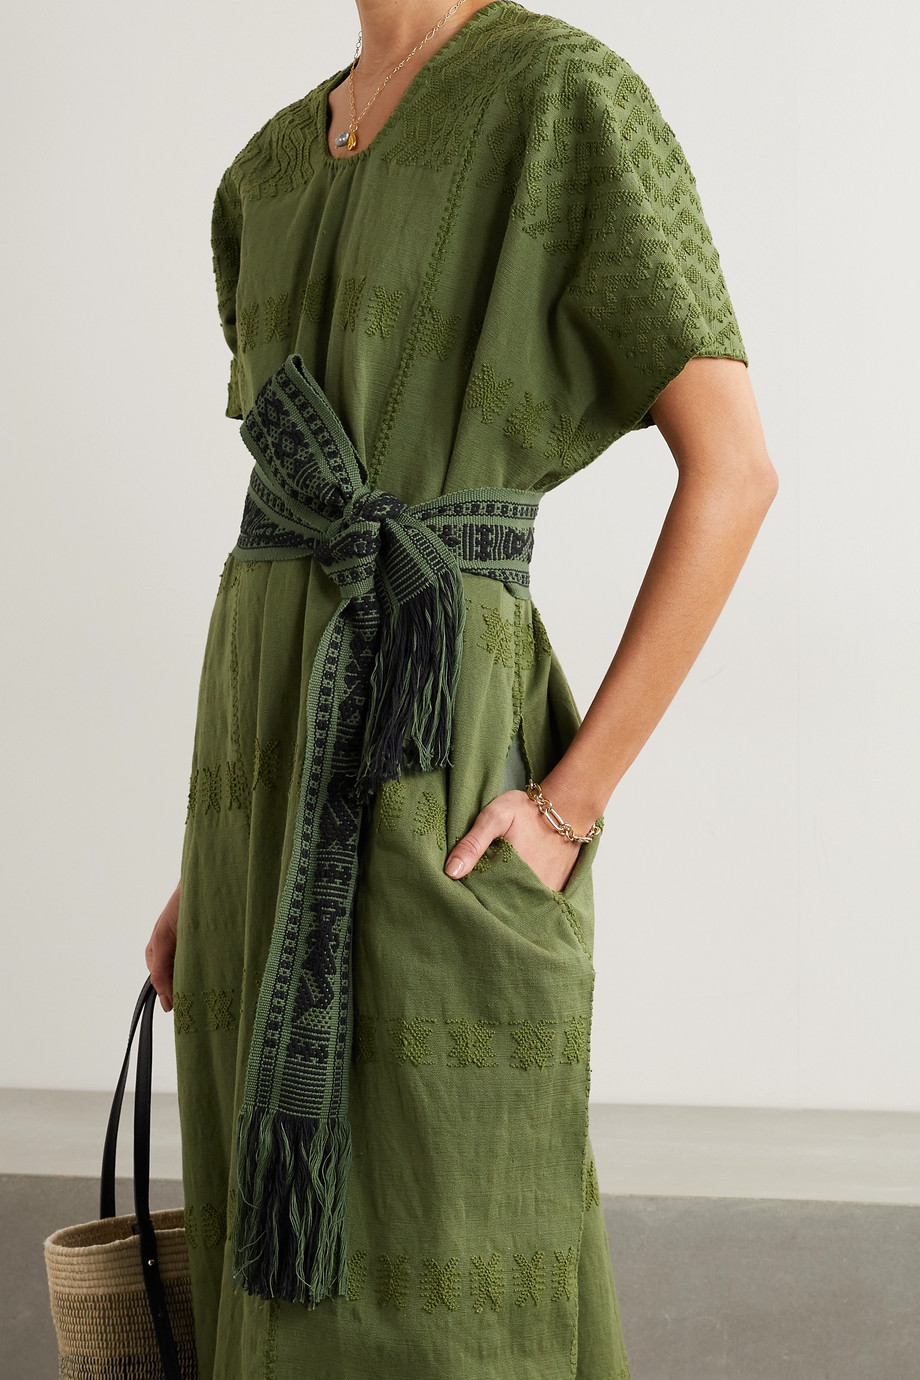 PIPPA HOLT + NET SUSTAIN fringed cotton-jacquard belt